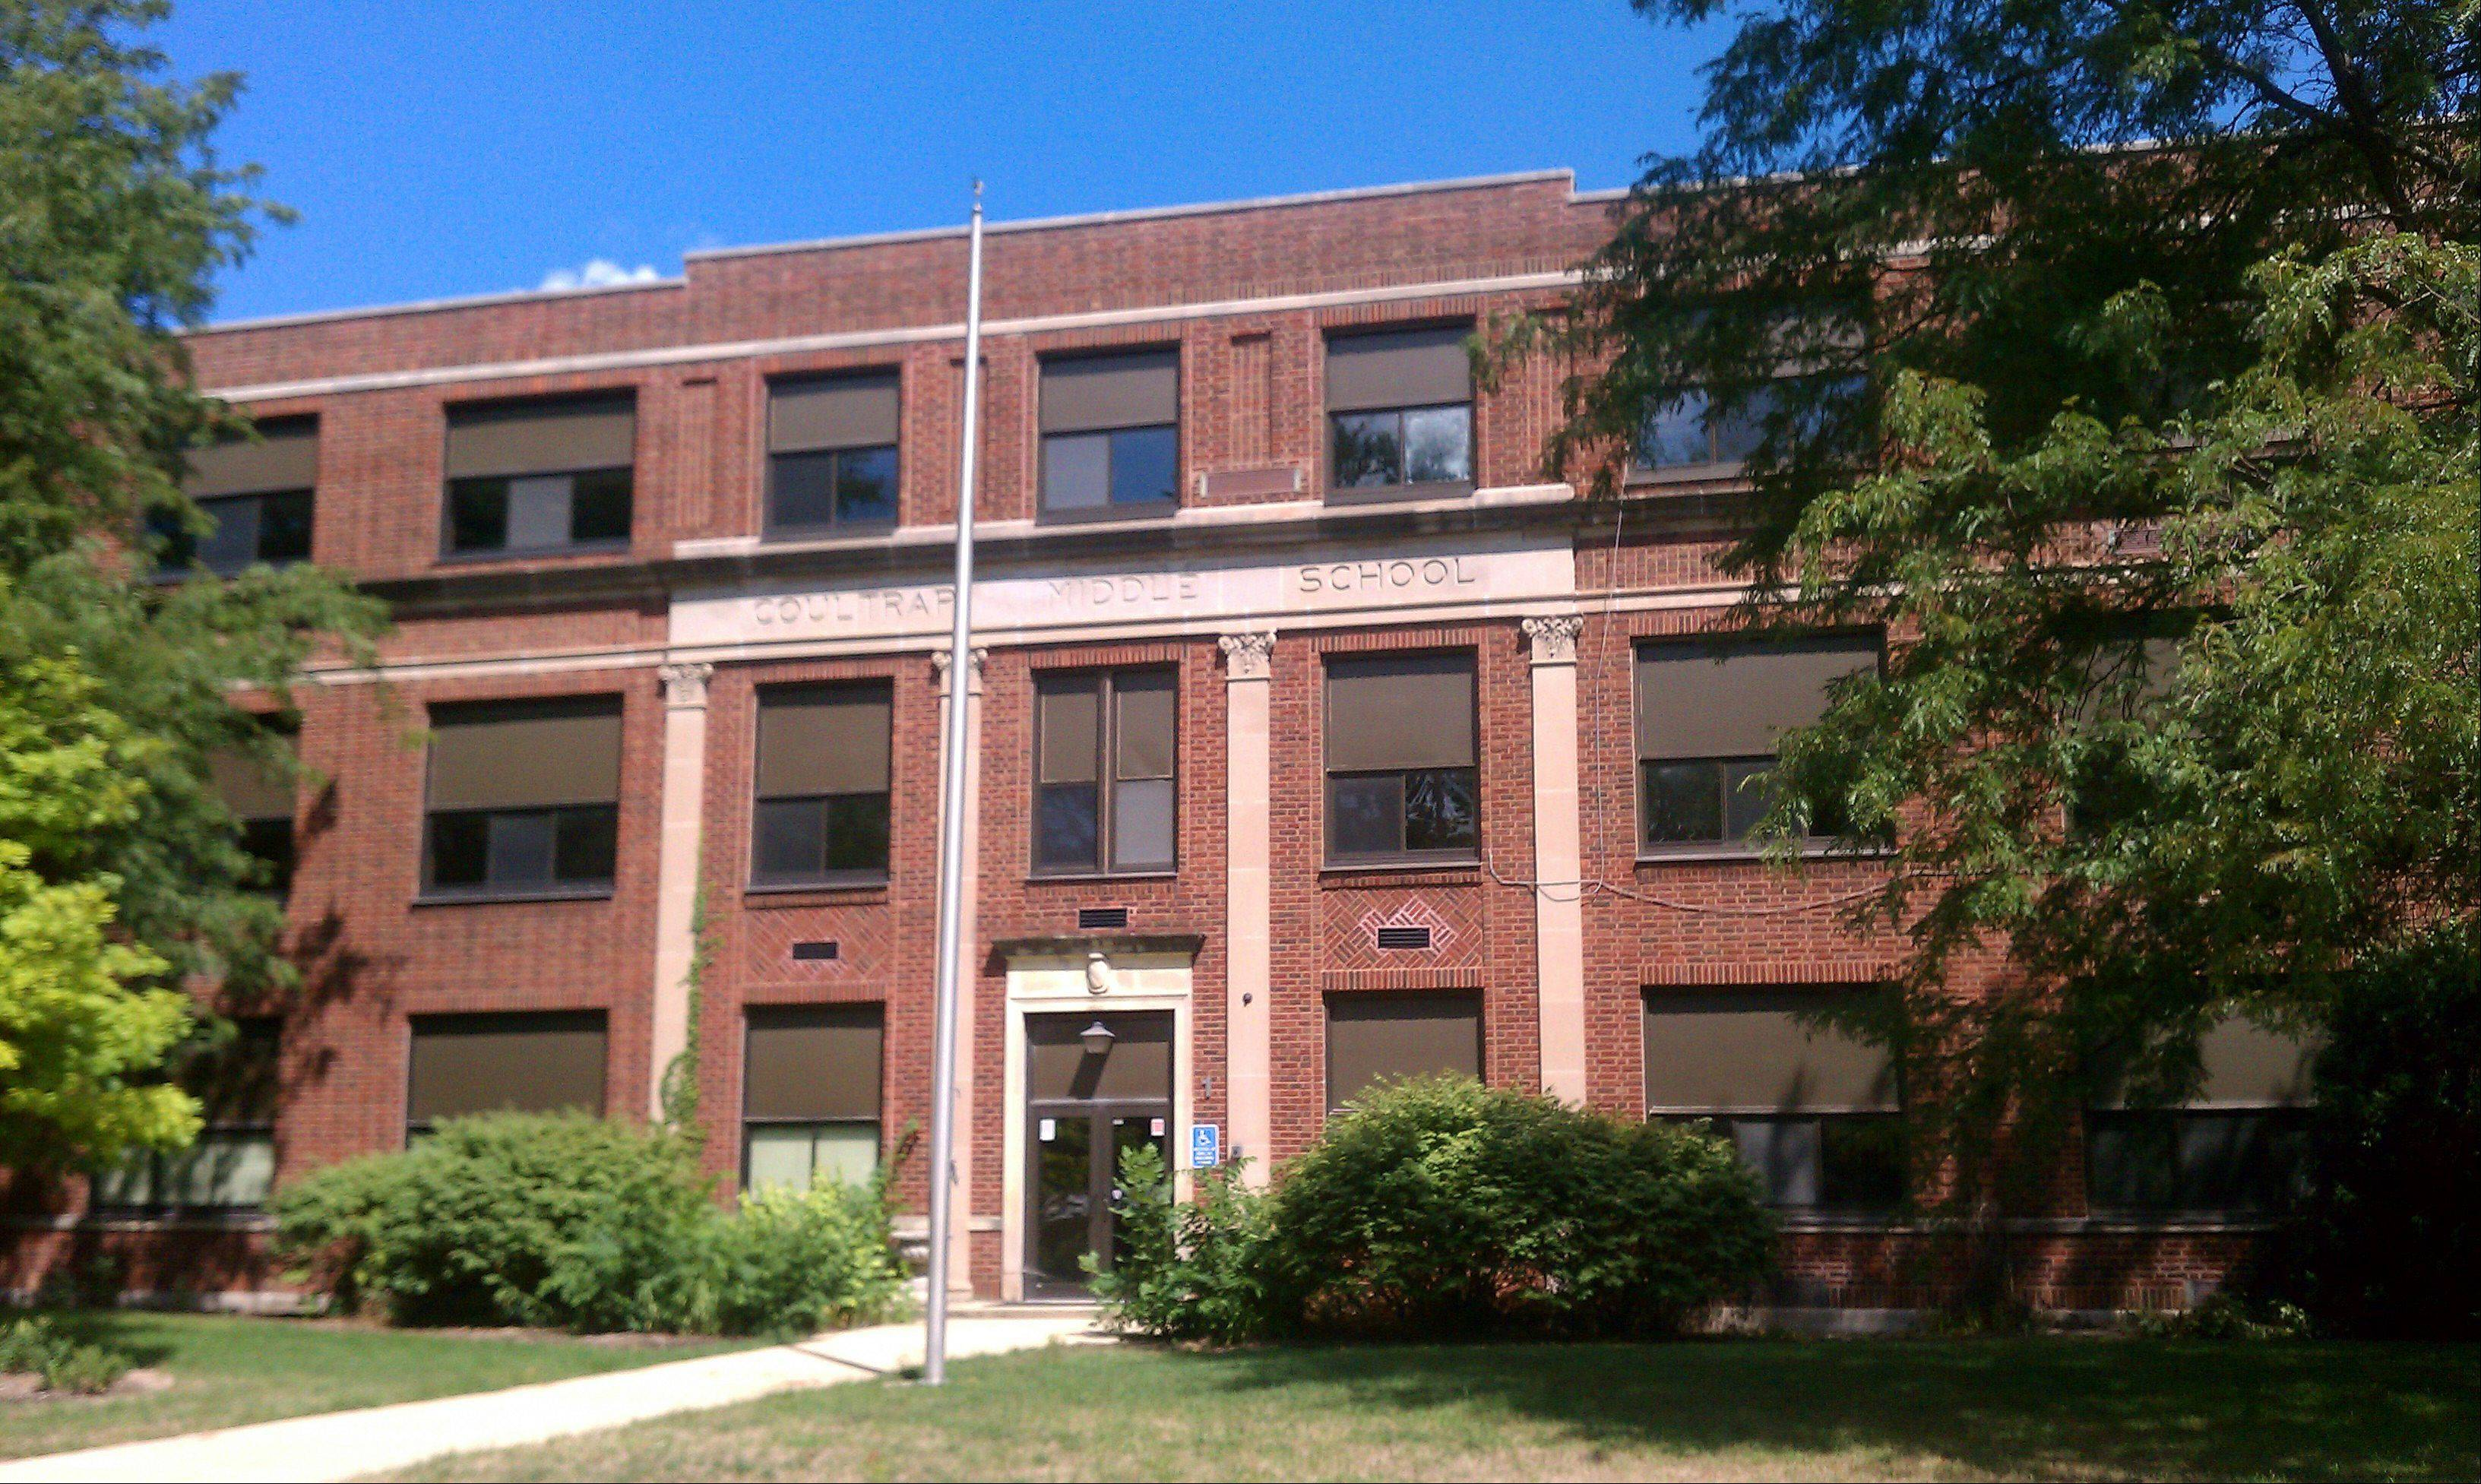 BRIAN HILL/bhill@dailyherald.com, August 2012 The empty Coultrap Elementary School, which started life in 1923 as Geneva's high school, will be demolished, the school board decided Monday.